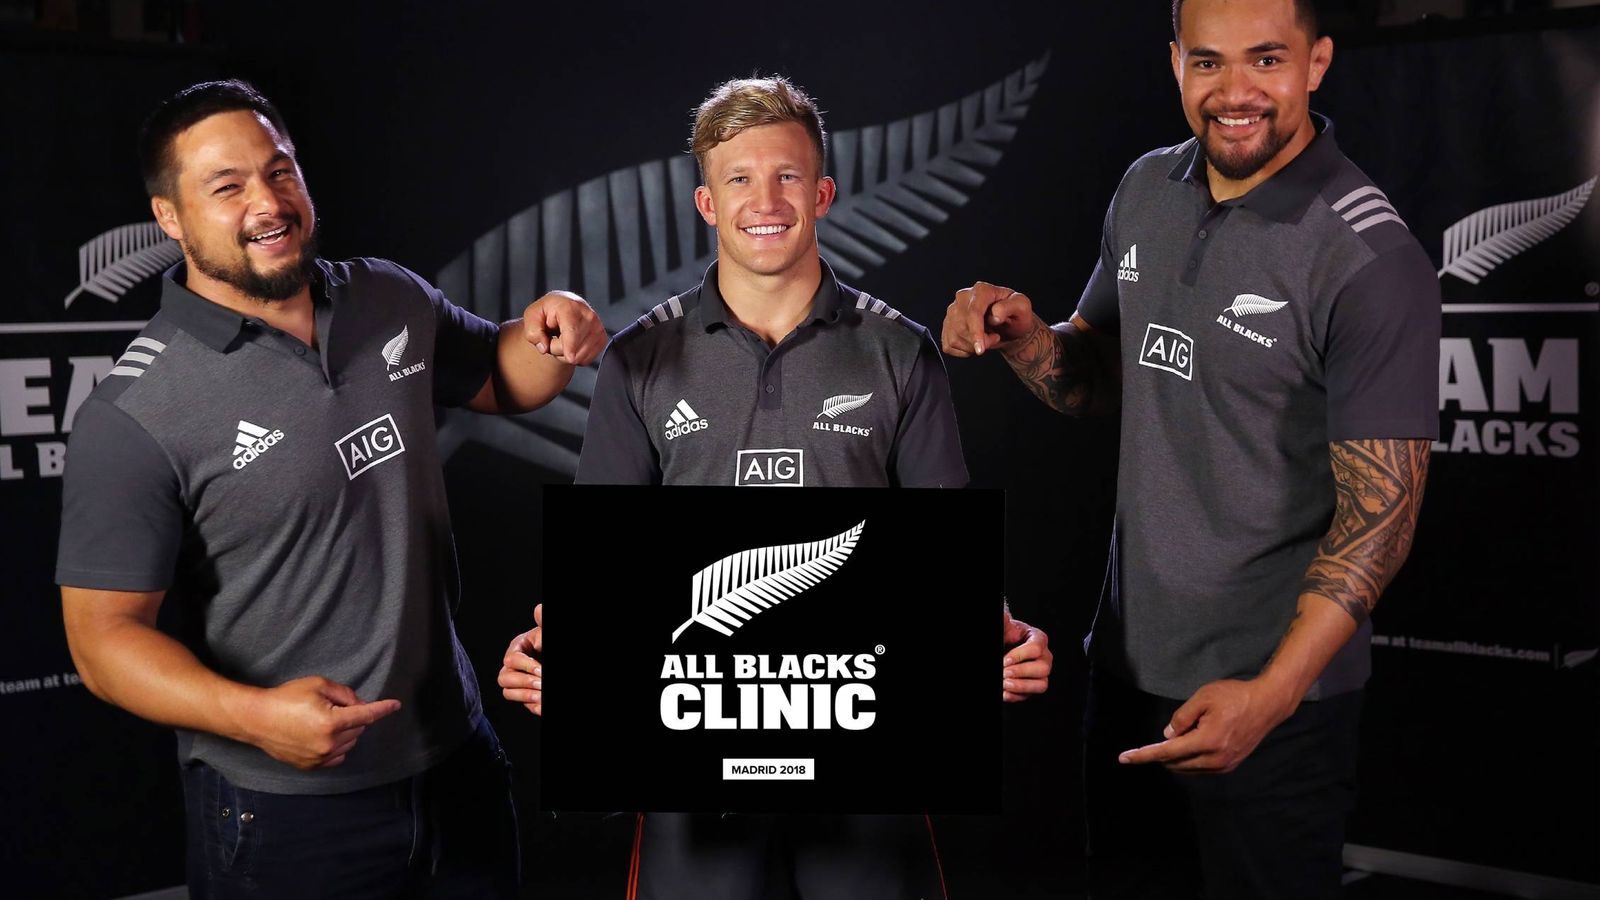 Foto: Cartel promocional del clínic que impartirán los All Blacks en Madrid en agosto. (Kiwi House)